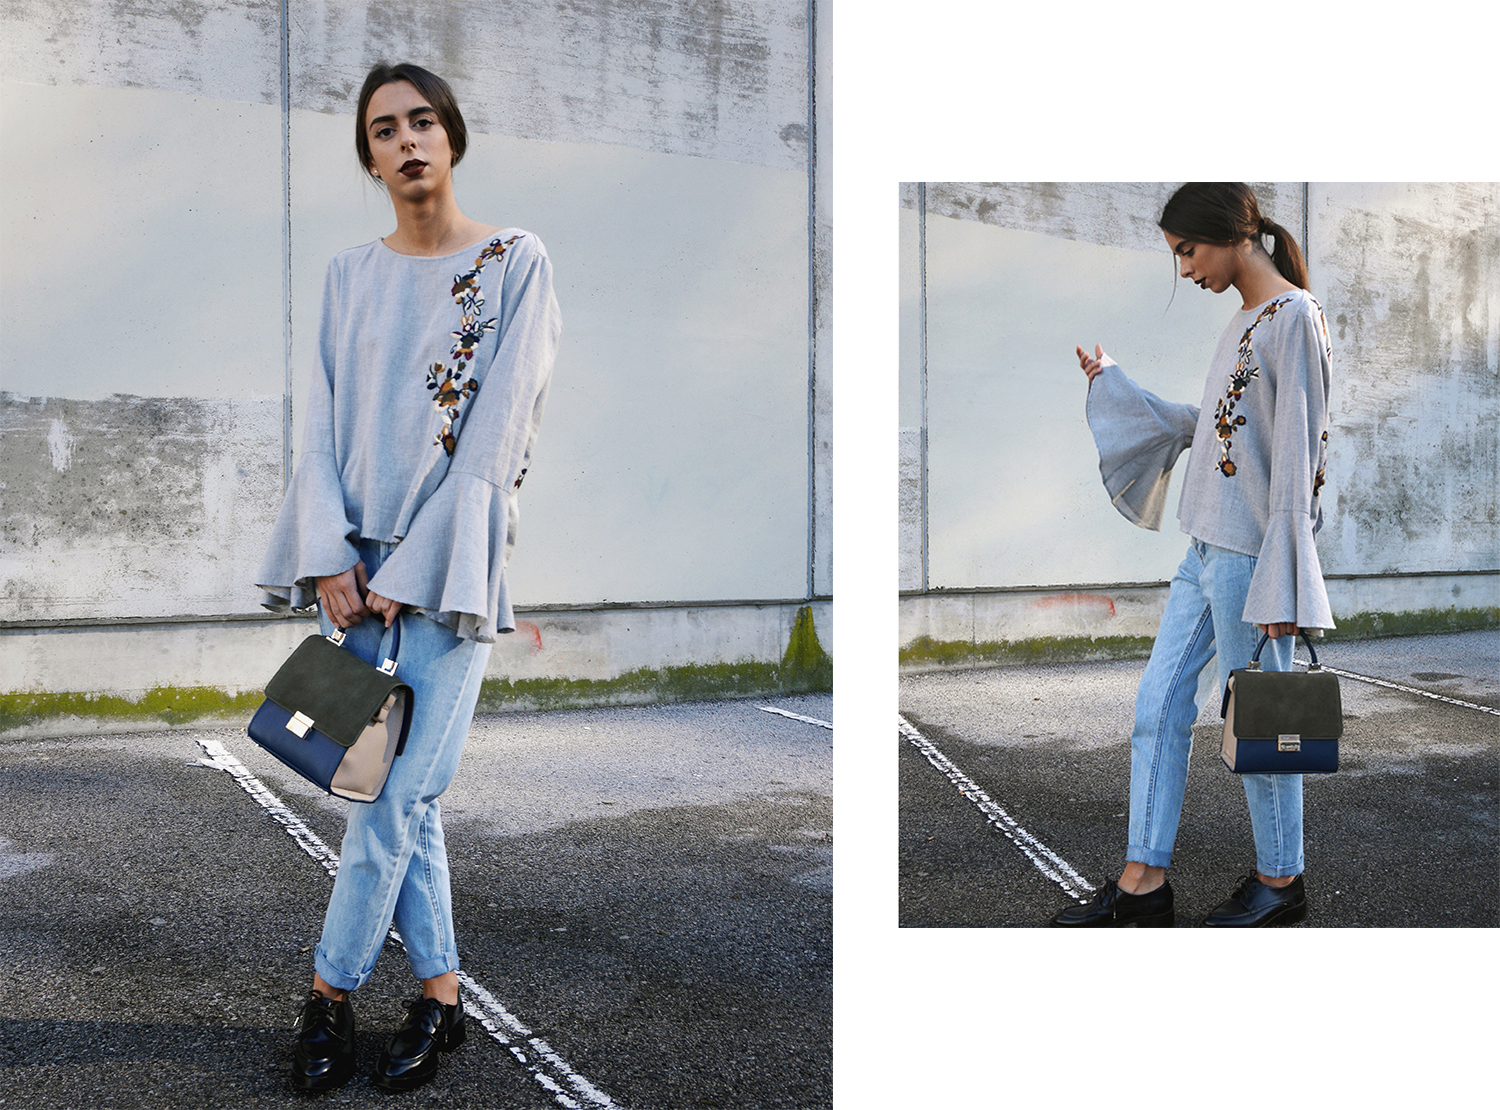 EMBROIDERED-BLOUSE-frilled-sleeve-mom-jean-derbies-black-littlebag-kyliejennercosmetics-chemisier-brode-manches-volantees-coastalandco-blog-hendaye-paysbasque  6